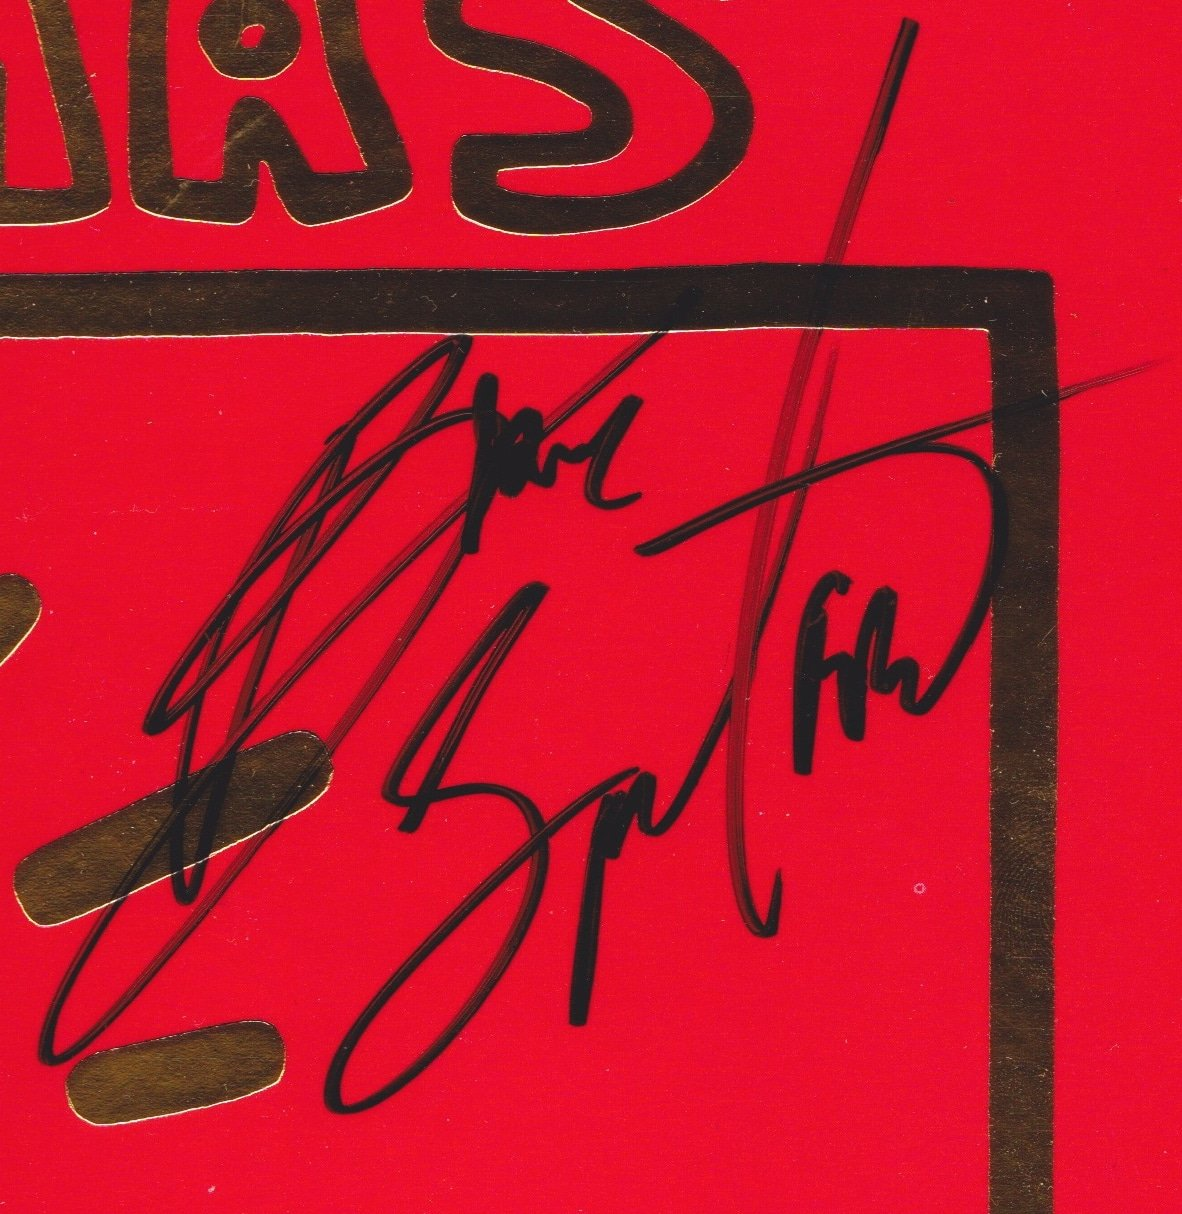 bruce springsteen bob seger john mellencamp signed very special christmas album